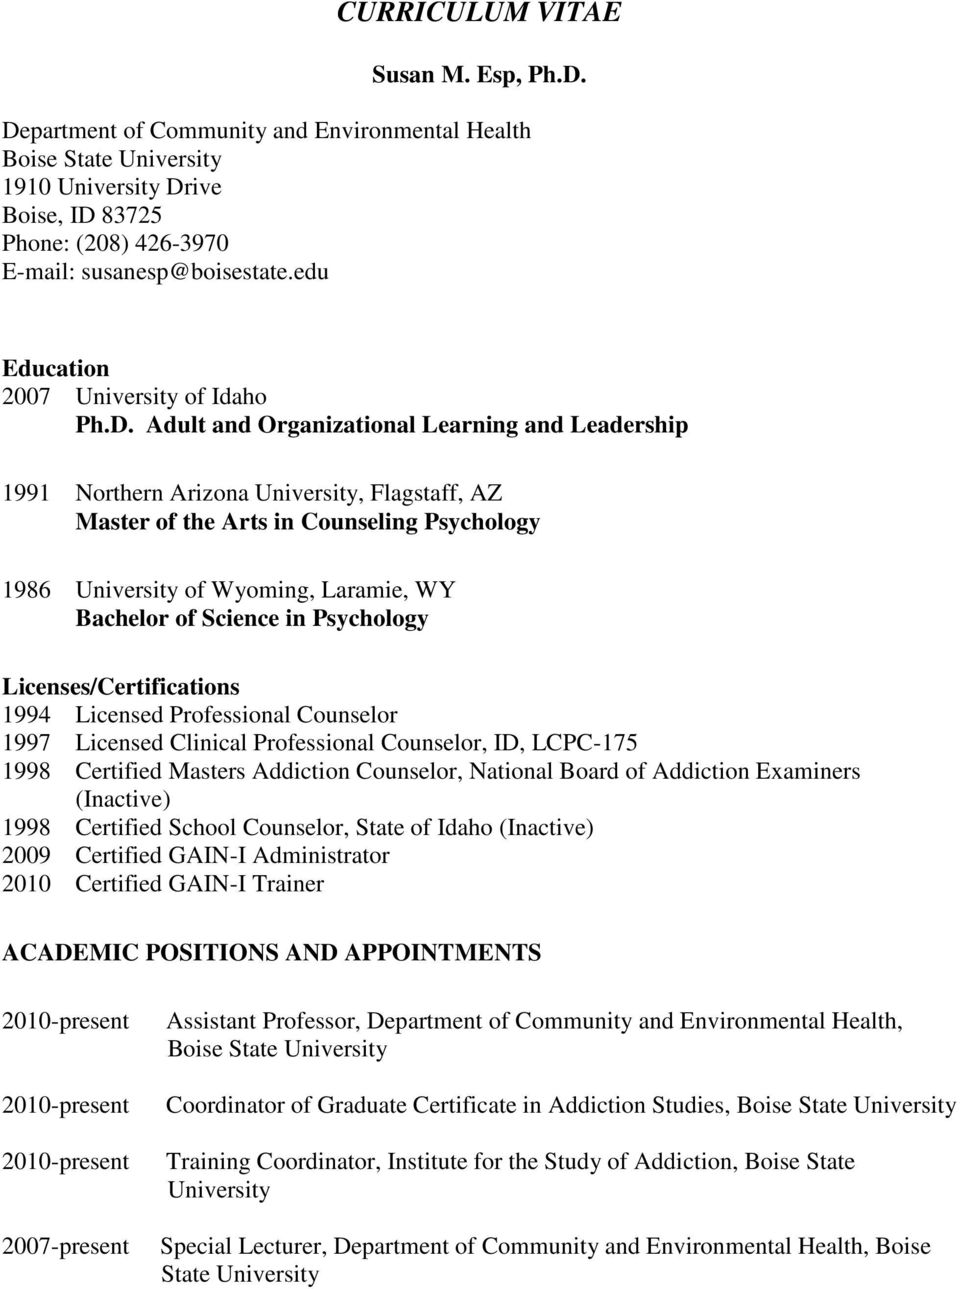 Adult and Organizational Learning and Leadership 1991 Northern Arizona University, Flagstaff, AZ Master of the Arts in Counseling Psychology 1986 University of Wyoming, Laramie, WY Bachelor of